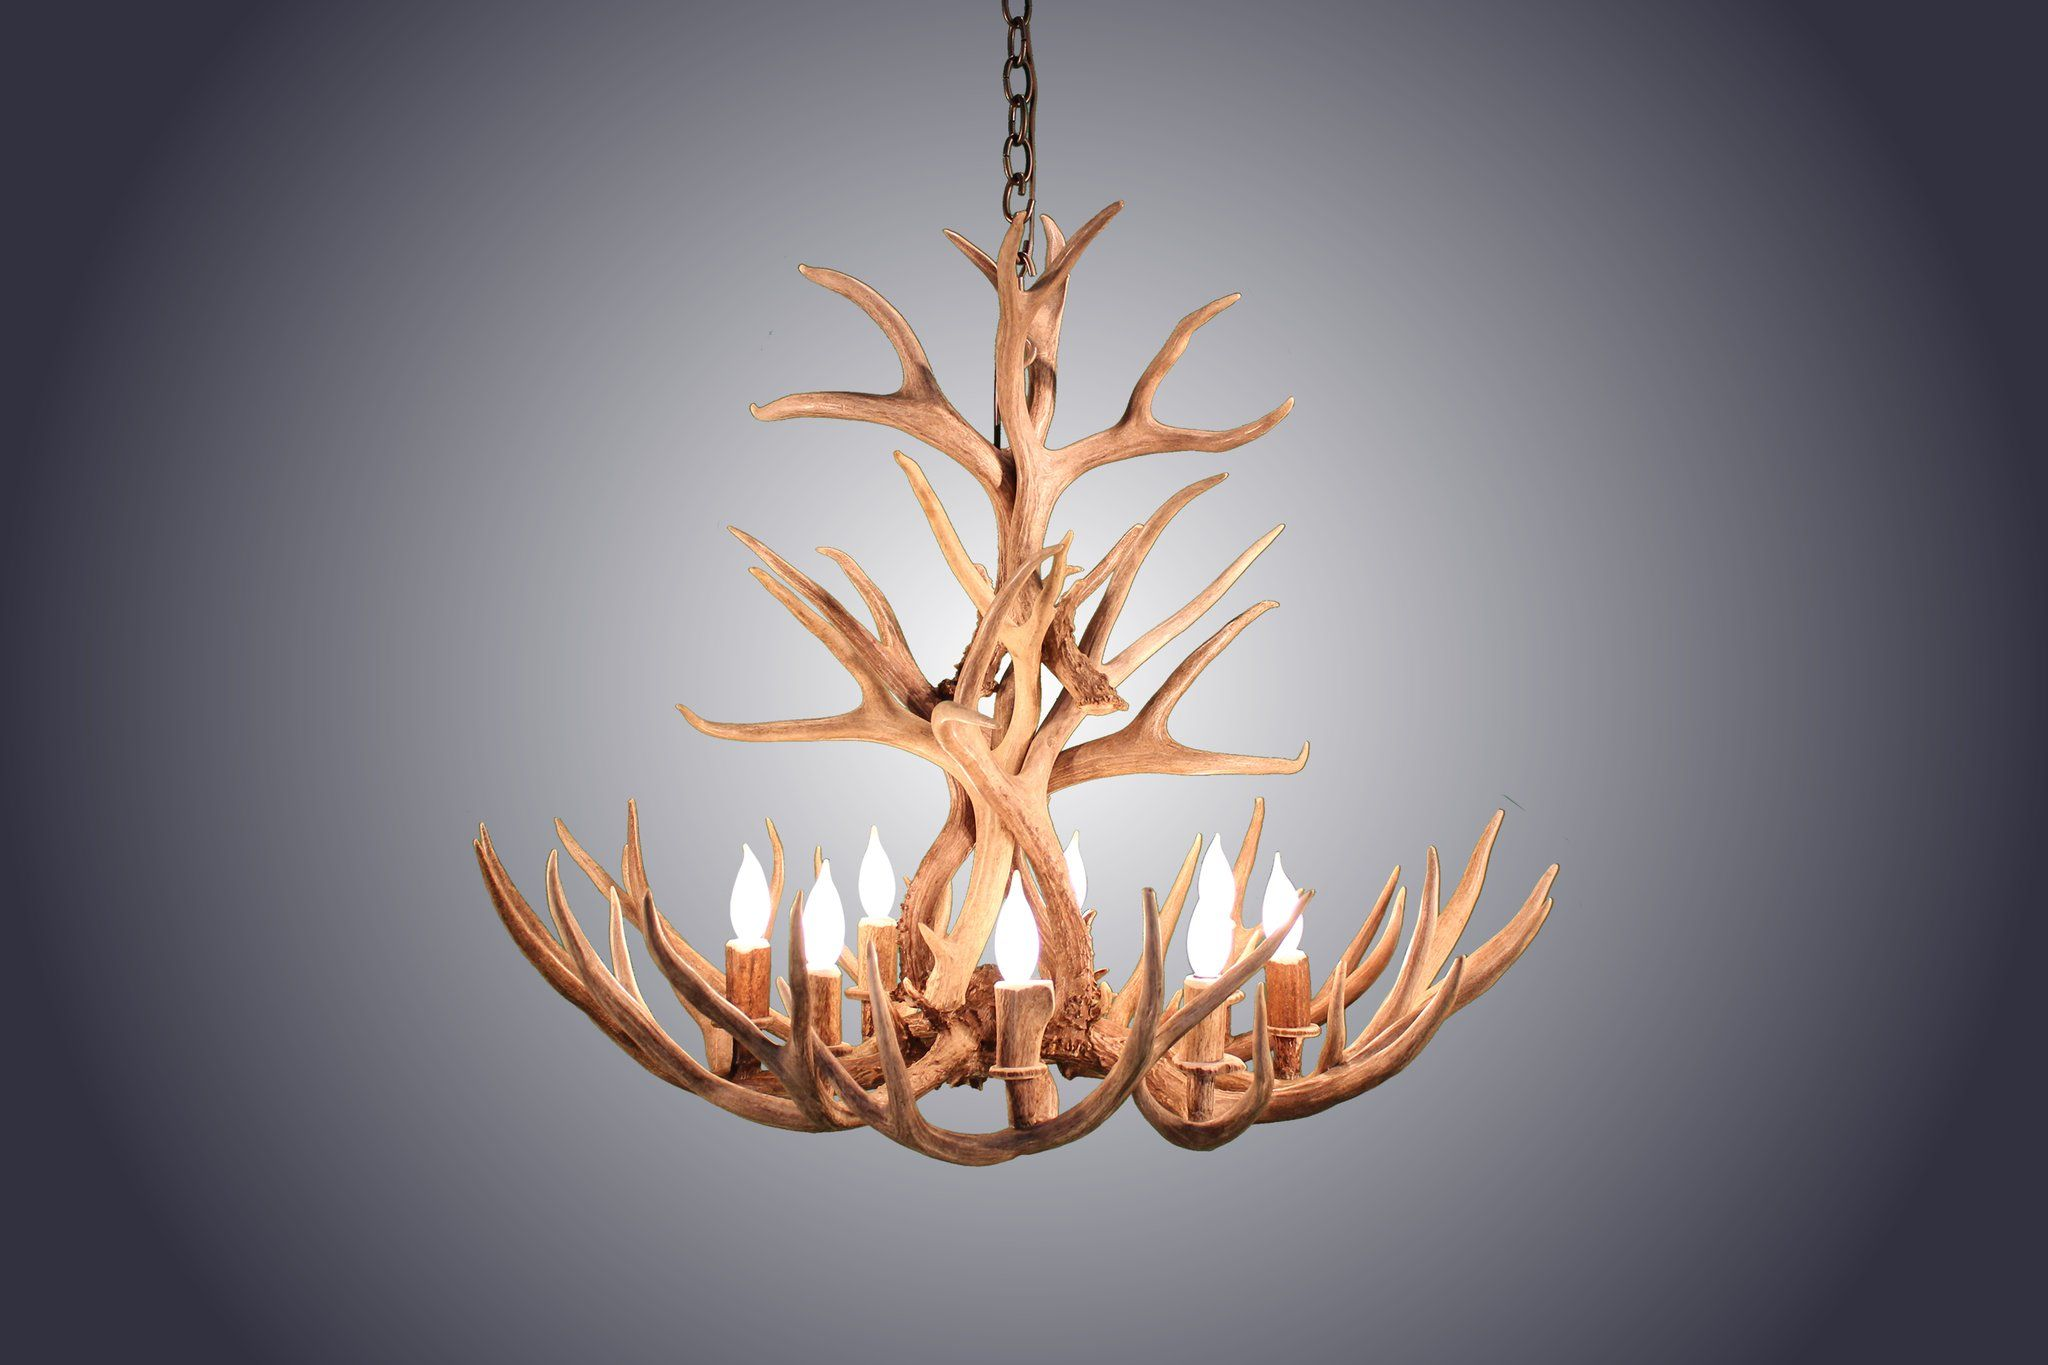 8 light tall mule deer antler chandelier awc 3 rustic style 8 light tall mule deer antler chandelier awc 3 aloadofball Images